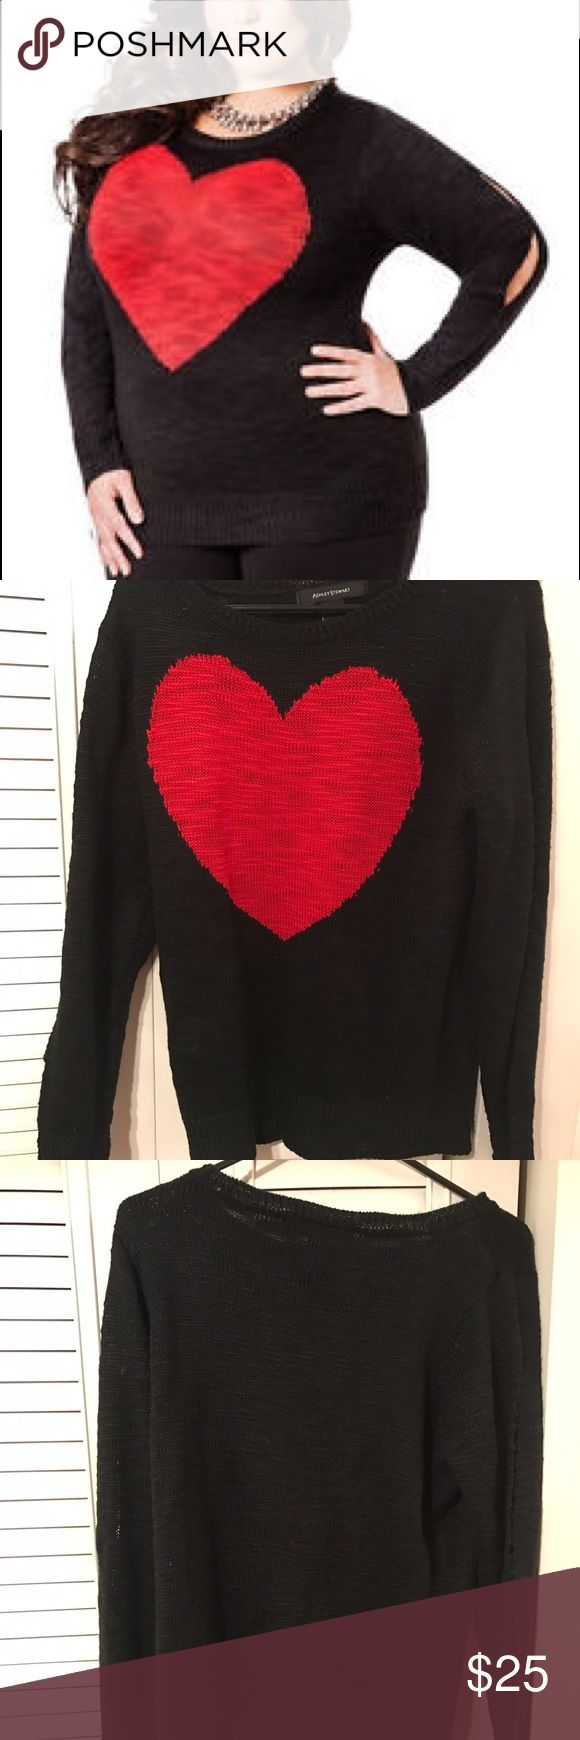 Ashley Stewart heart cold shoulder sweater Heart detail cold shoulder sweater. Perfect for V-Day! Size 12 in Ashley Stewart is equivalent to a XL/1X. Ashley Stewart Sweaters